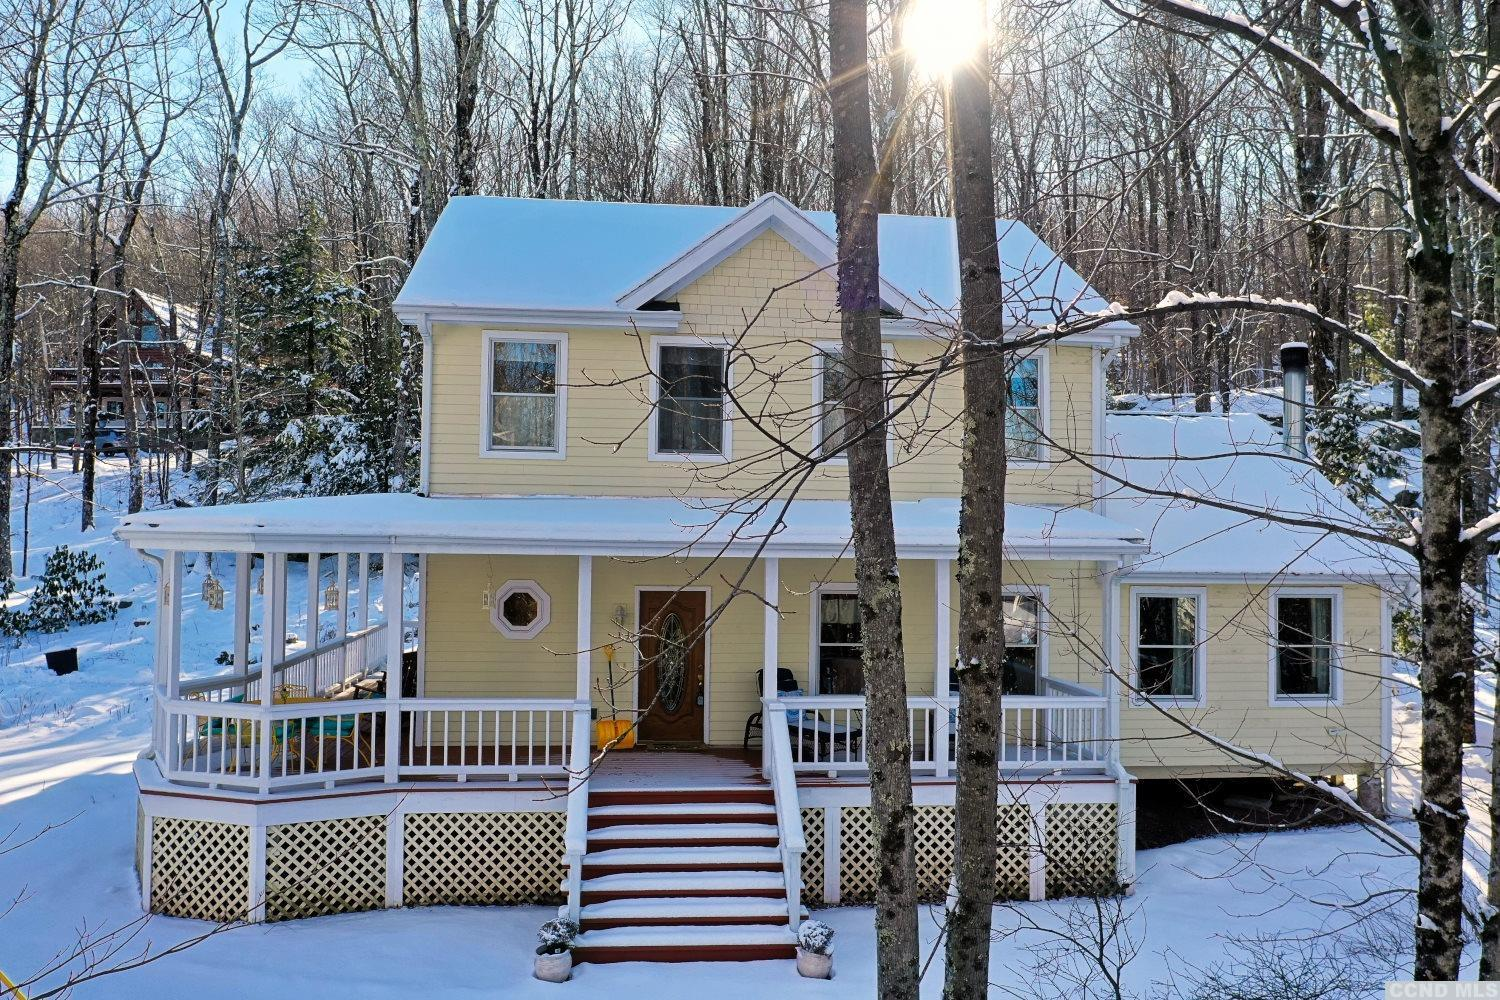 A Stunning 4 Bedroom, 3 Bath Contemporary Country Retreat in the Ski Heartland of the Catskills-Hunter Mountain! The home features a kitchen with a breakfast bar which walkouts to the wraparound country porch, a living room, a dining room, a family room with a fireplace, a 1st floor bedroom or an office, & 2 master suites on the 2nd floor. The large master ensuite offers a large bedroom, a full bath, & a large walk-in closet. There is an enjoyable wraparound country porch with a corner gazebo. The home is indeed a charming country display of sophistication & grace. The grounds offer a beautiful mountainside landscape of peace & tranquility. Sunset Park Rd is near Kaaterskill Clove/Trails: 'An area of timeless beauty & endless opportunities'. It's 10 to 12 minutes to Hunter Ski Mountain & North South Lake. The home was built in 2007 & since that time there are newer upgrades: septic system, heating system, & high-speed internet. An Extraordinary Home!